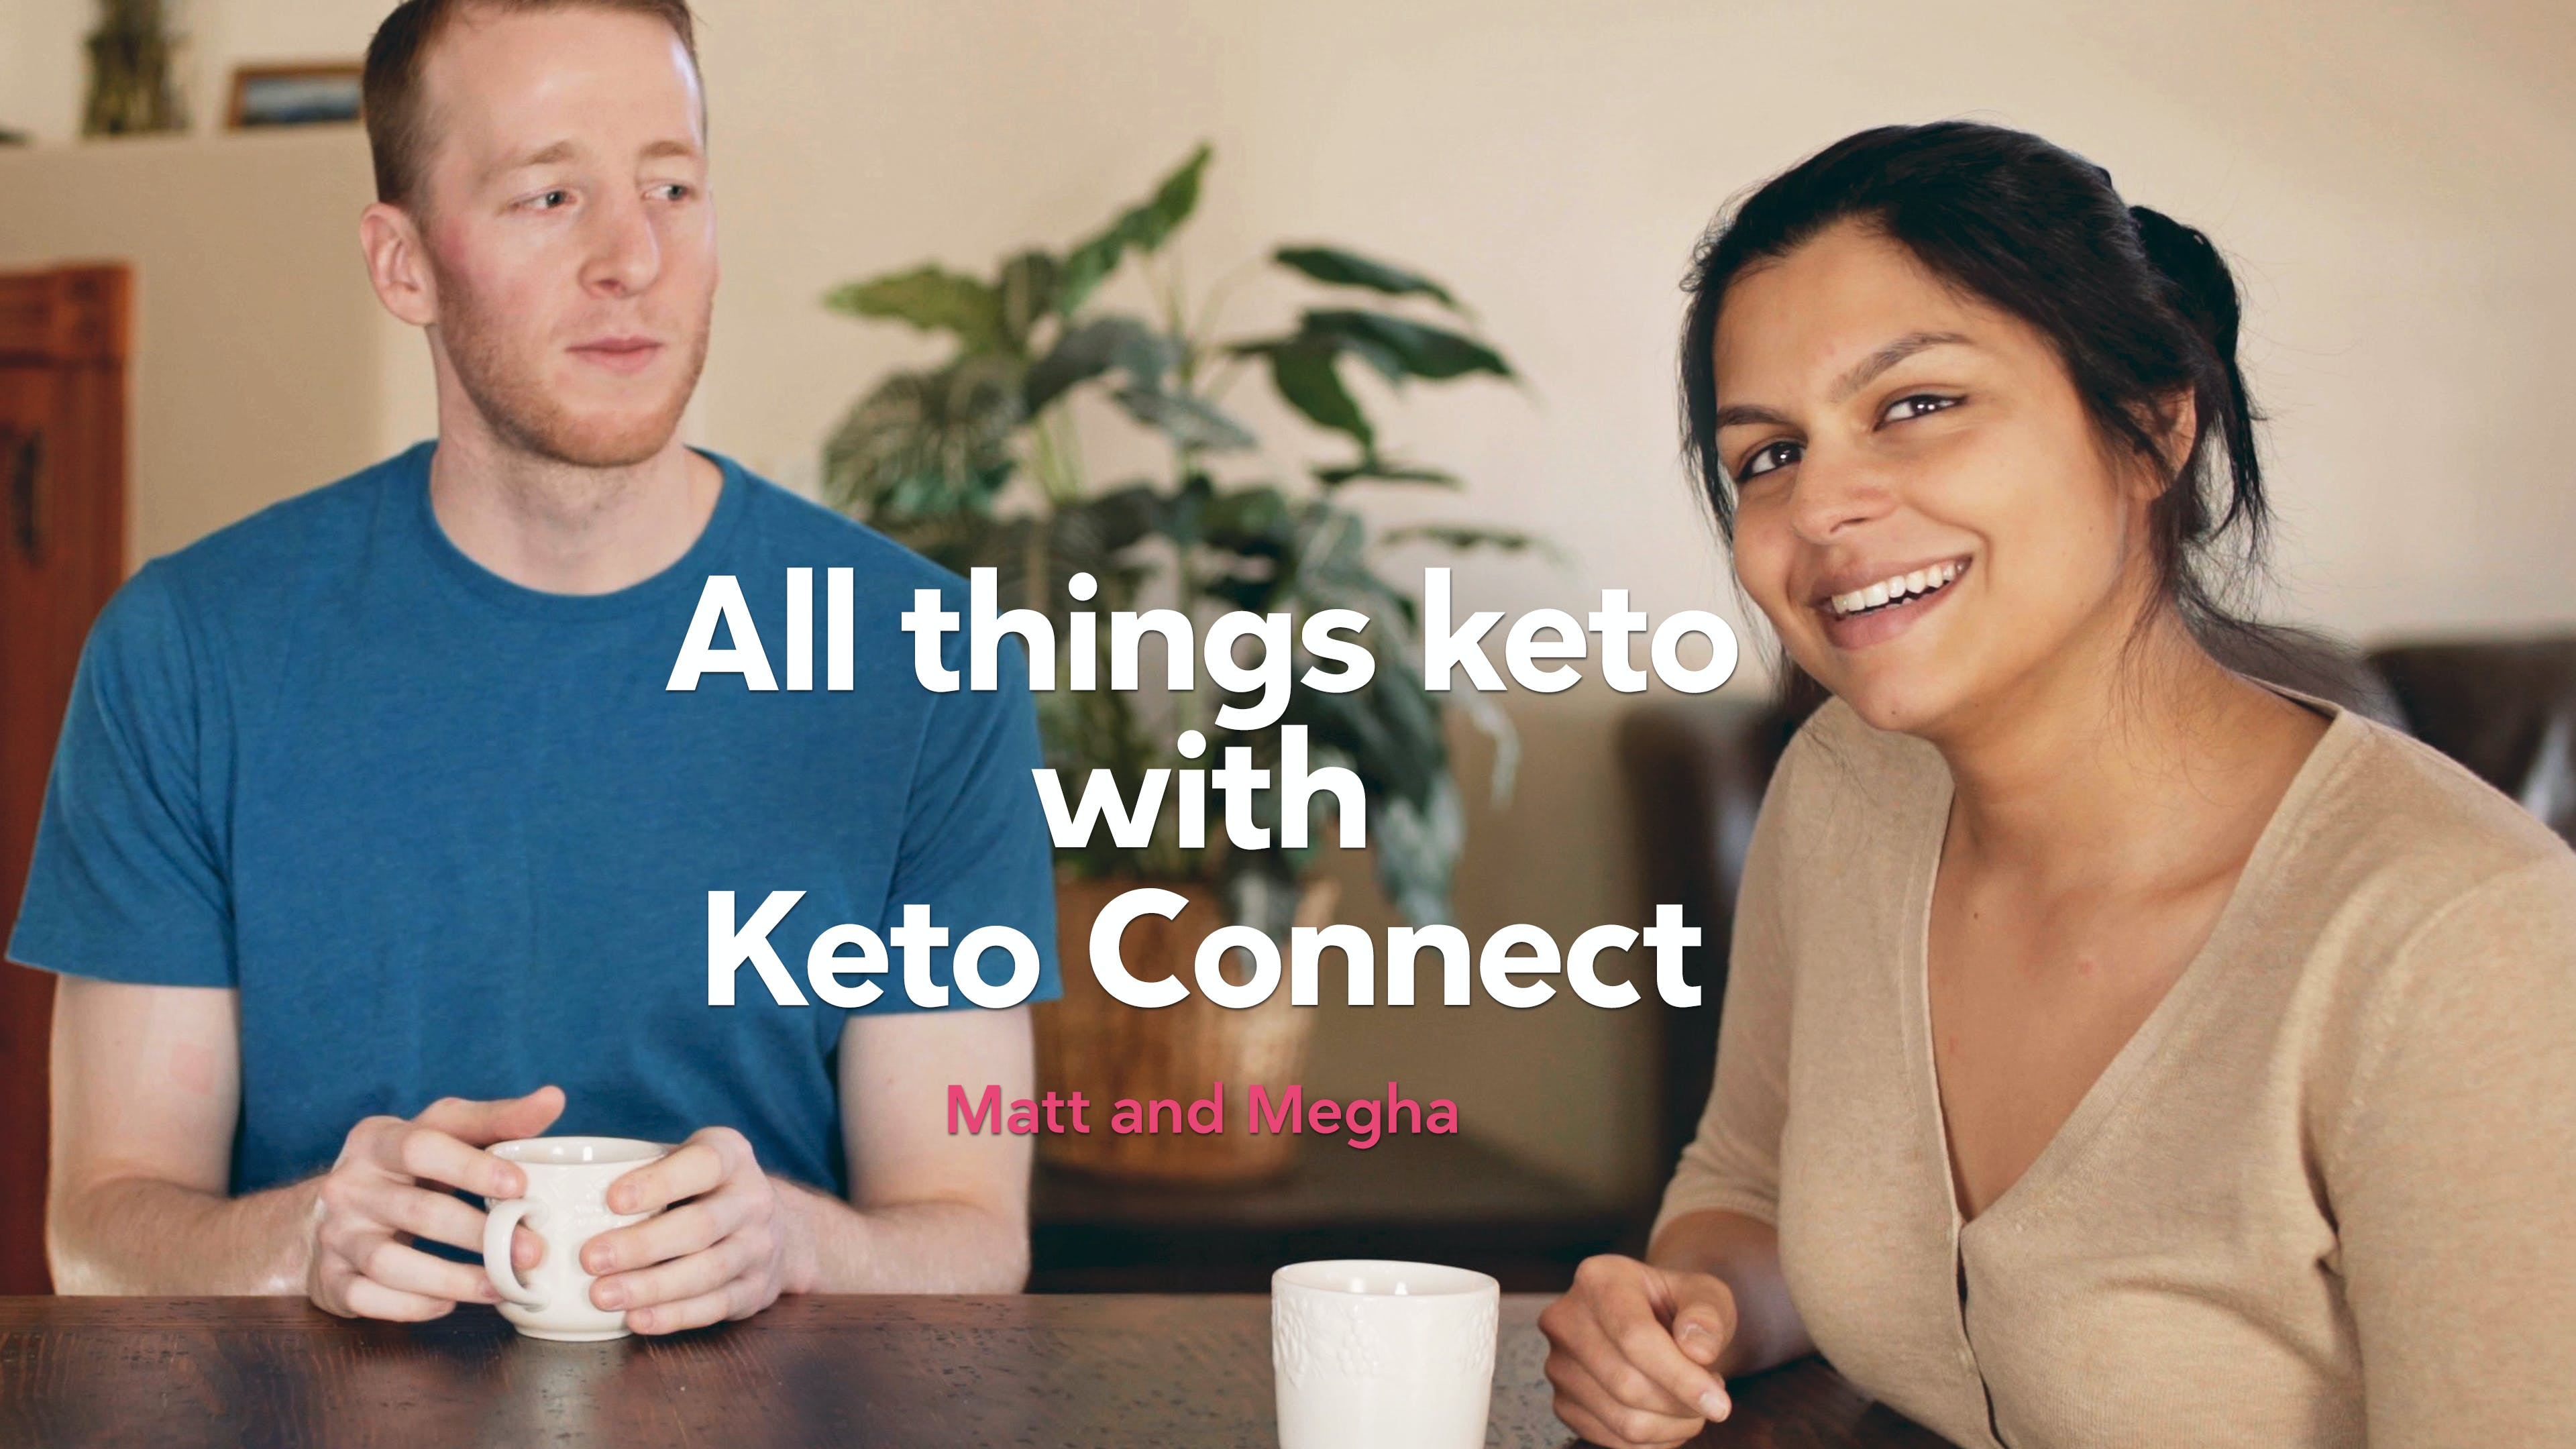 Keto Connect: Meeting the creators of the top keto YouTube channel in the world